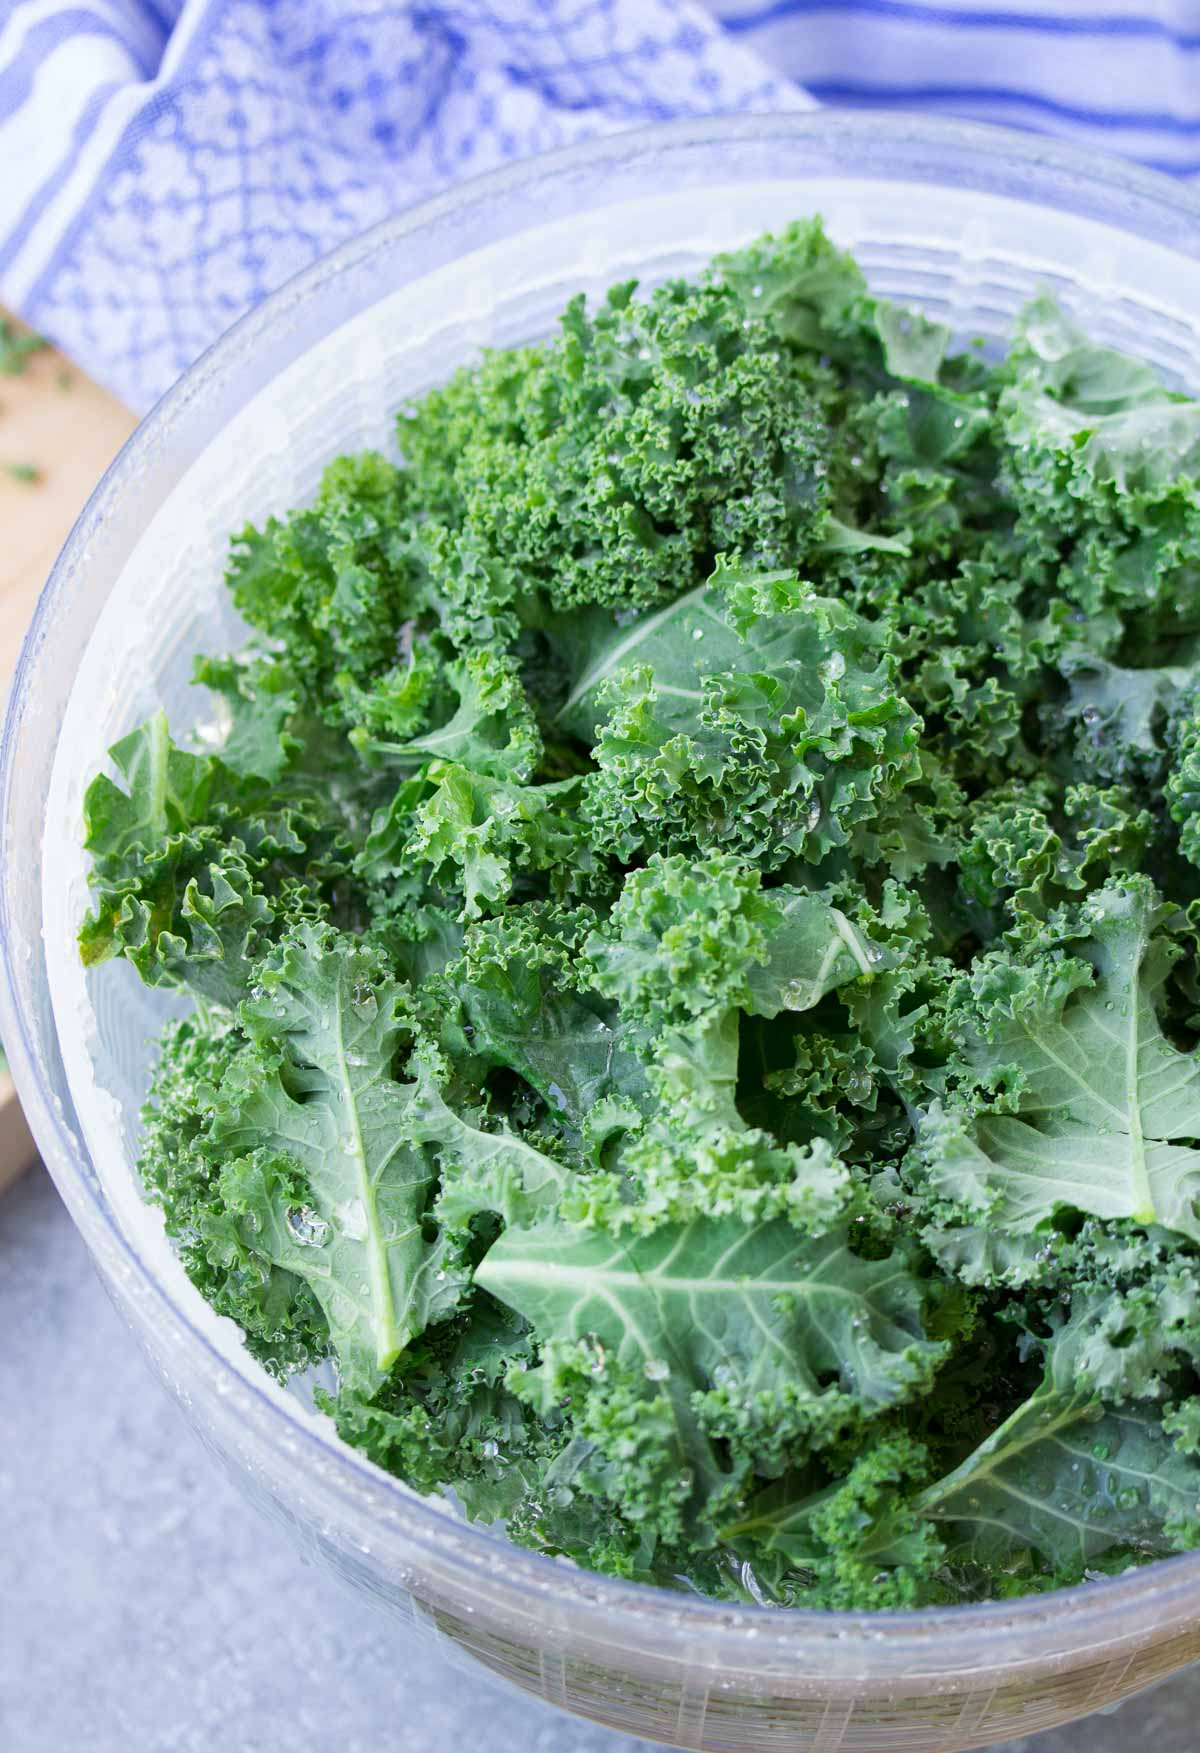 The BEST way for how to wash and store kale, so that it stays fresh and ready for quick smoothies and salads! Simple tips to make prepping kale as easy as can be! Using this easy method, your greens will stay fresh for up to two weeks!